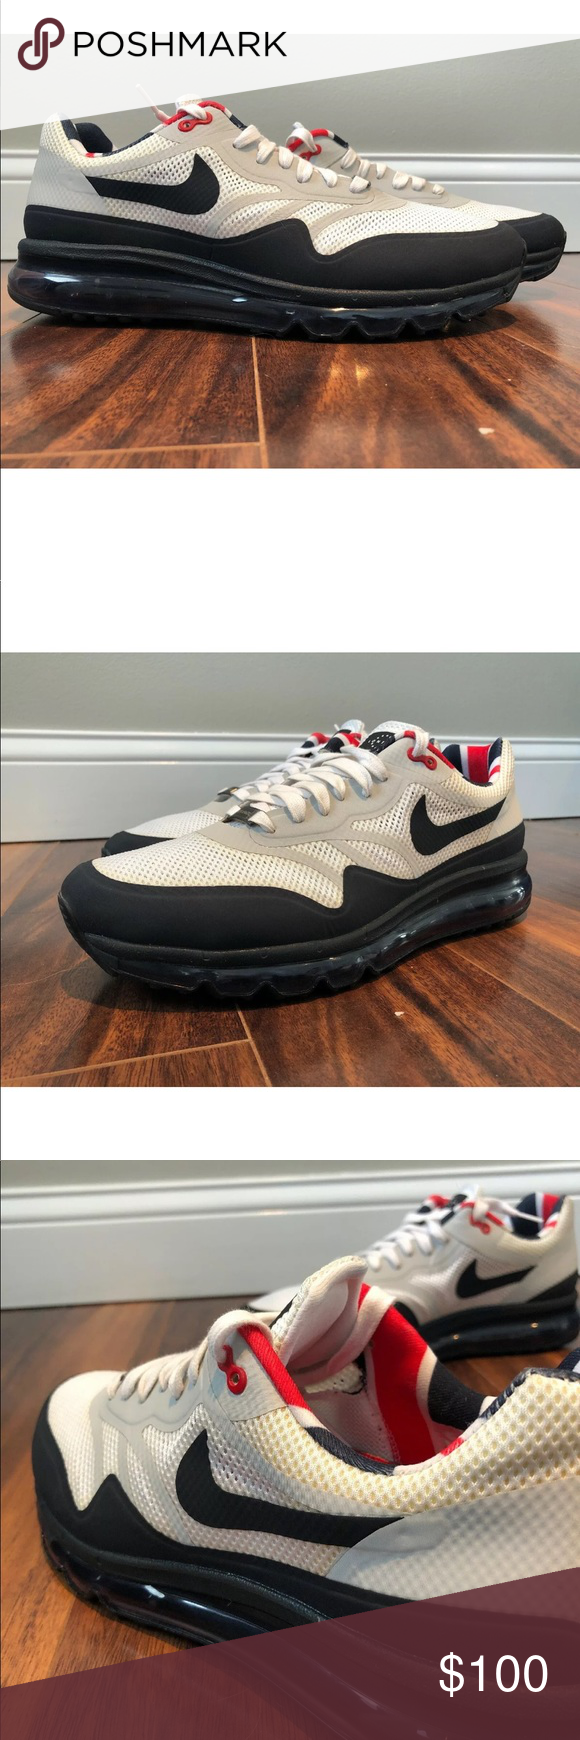 Nike Air Max 2013 London Edition WORE ONCE IKE AIR MAX 1